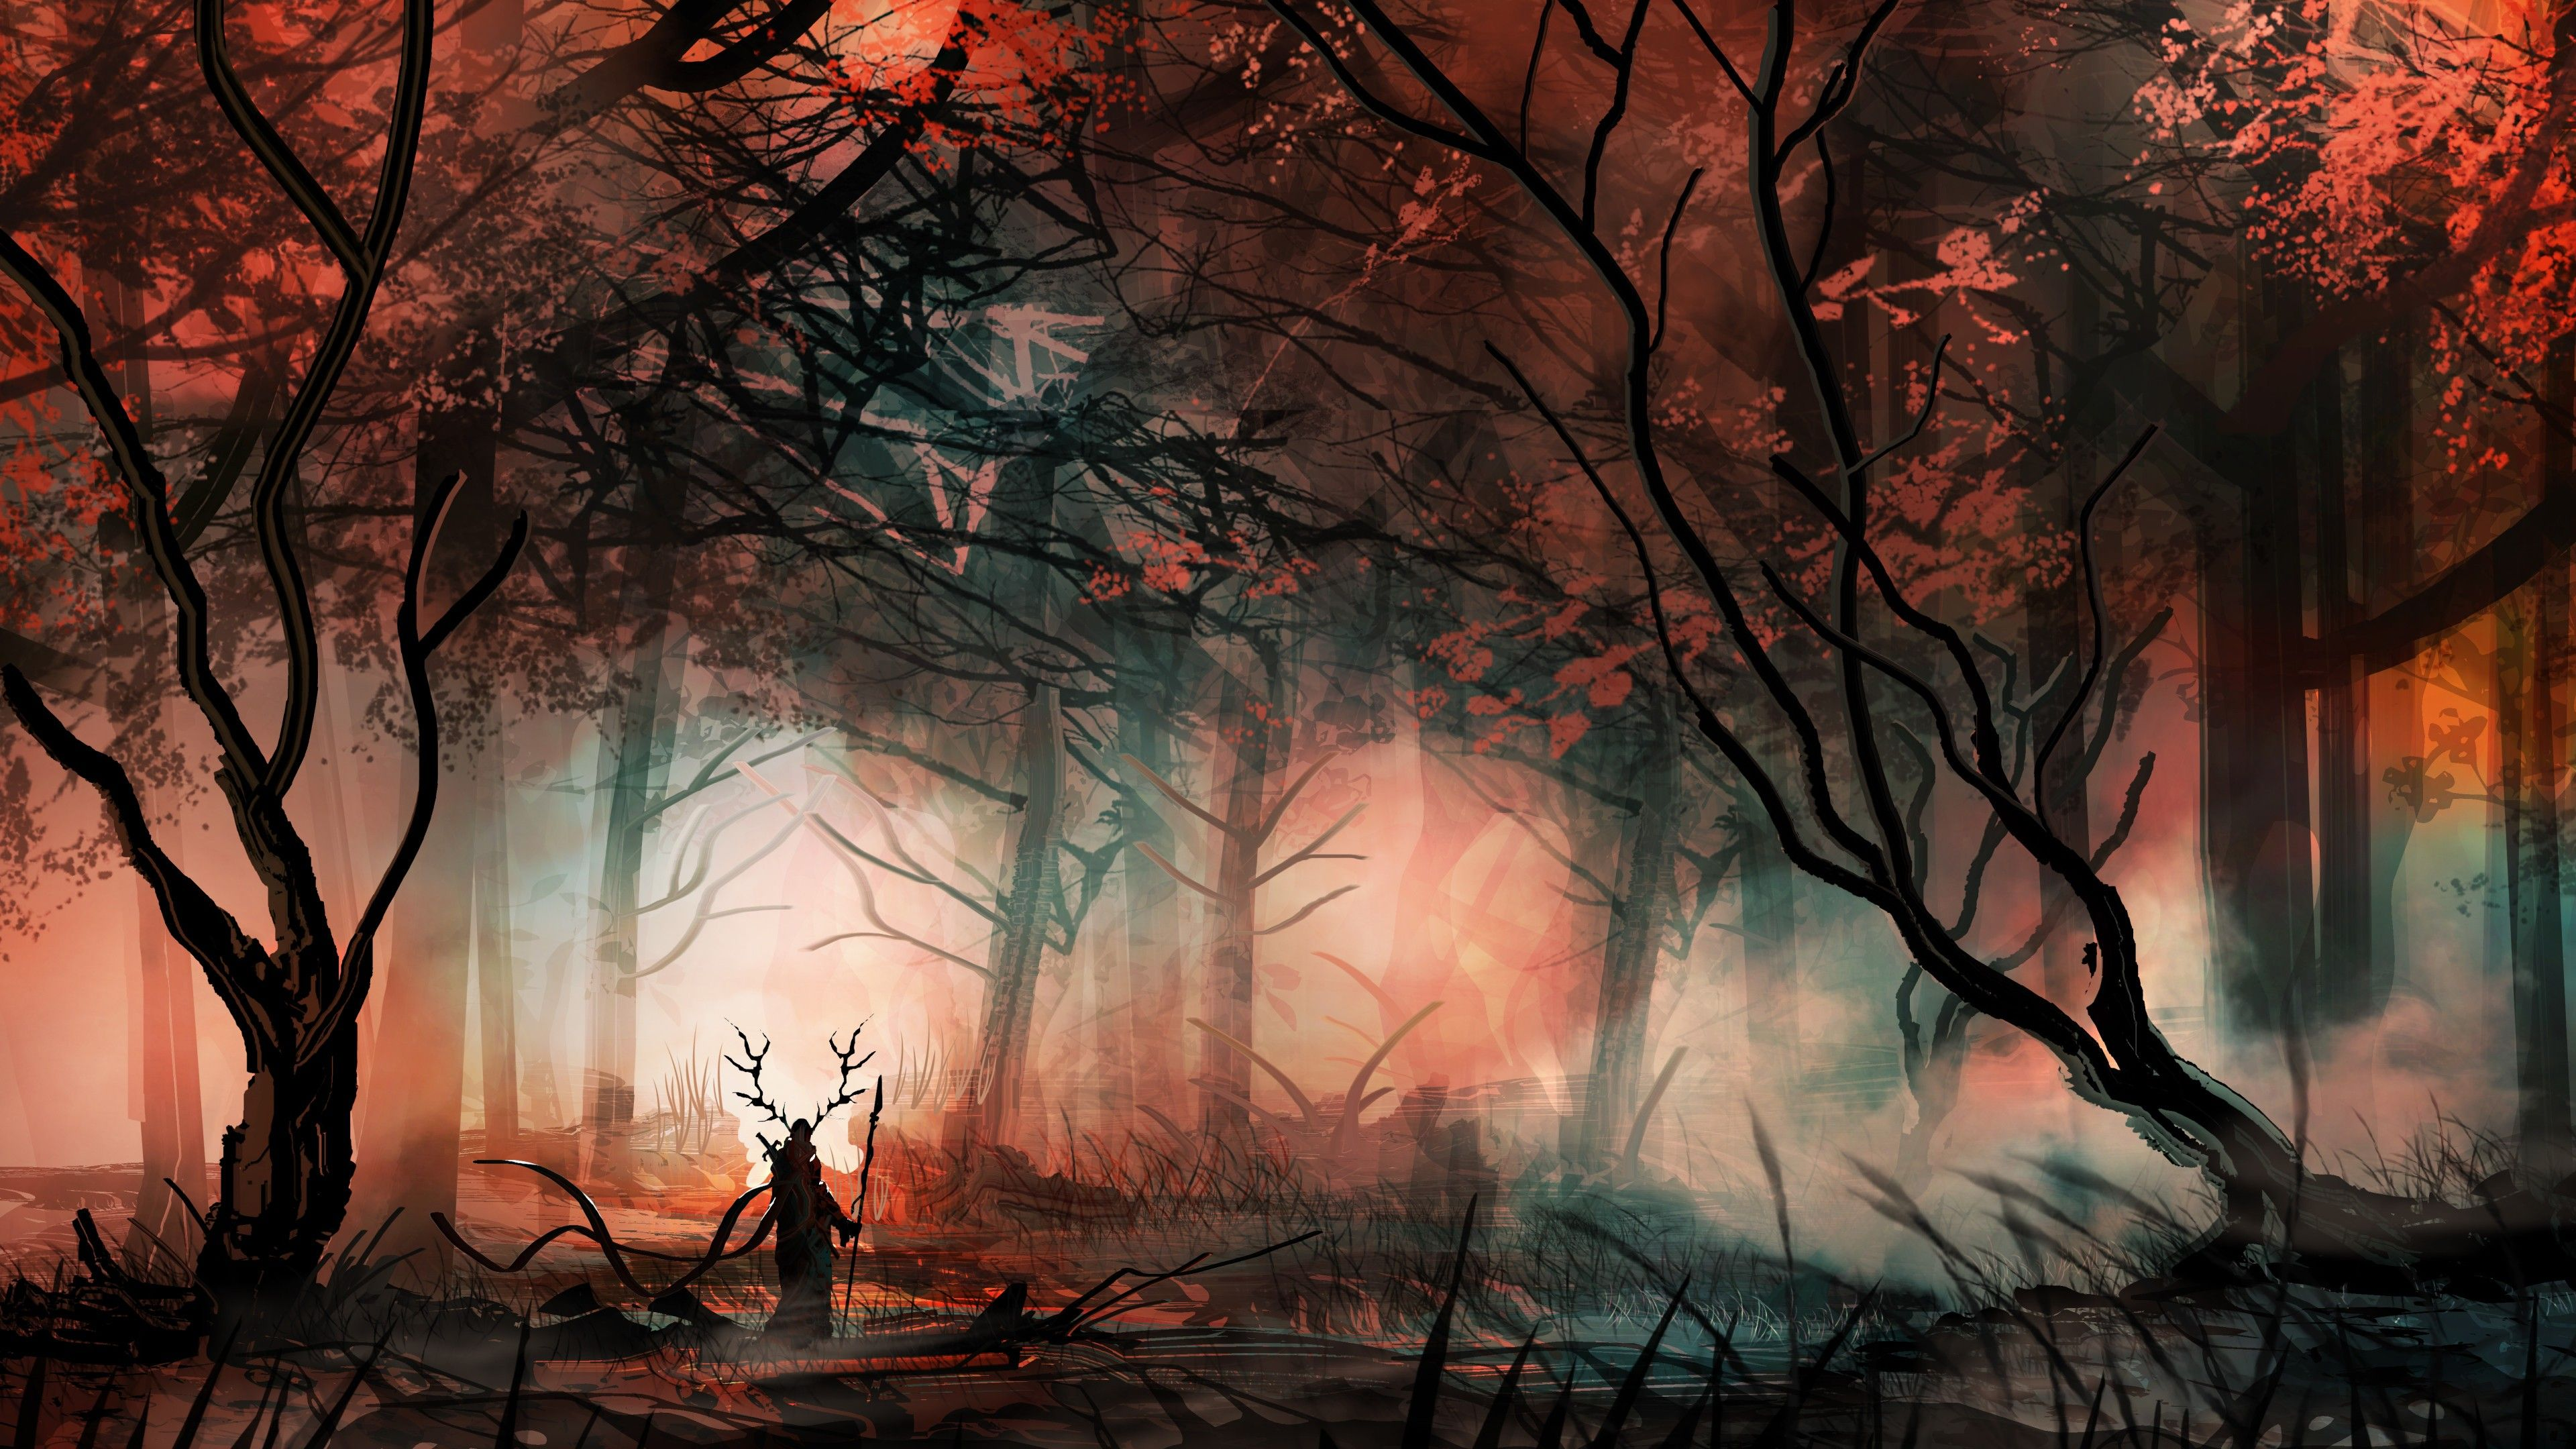 General 3840x2160 Fantasy Art Trees Forest Hero Loneliness Digital Art Mist Fantasy Forest Forest Wallpaper Fantasy Paintings